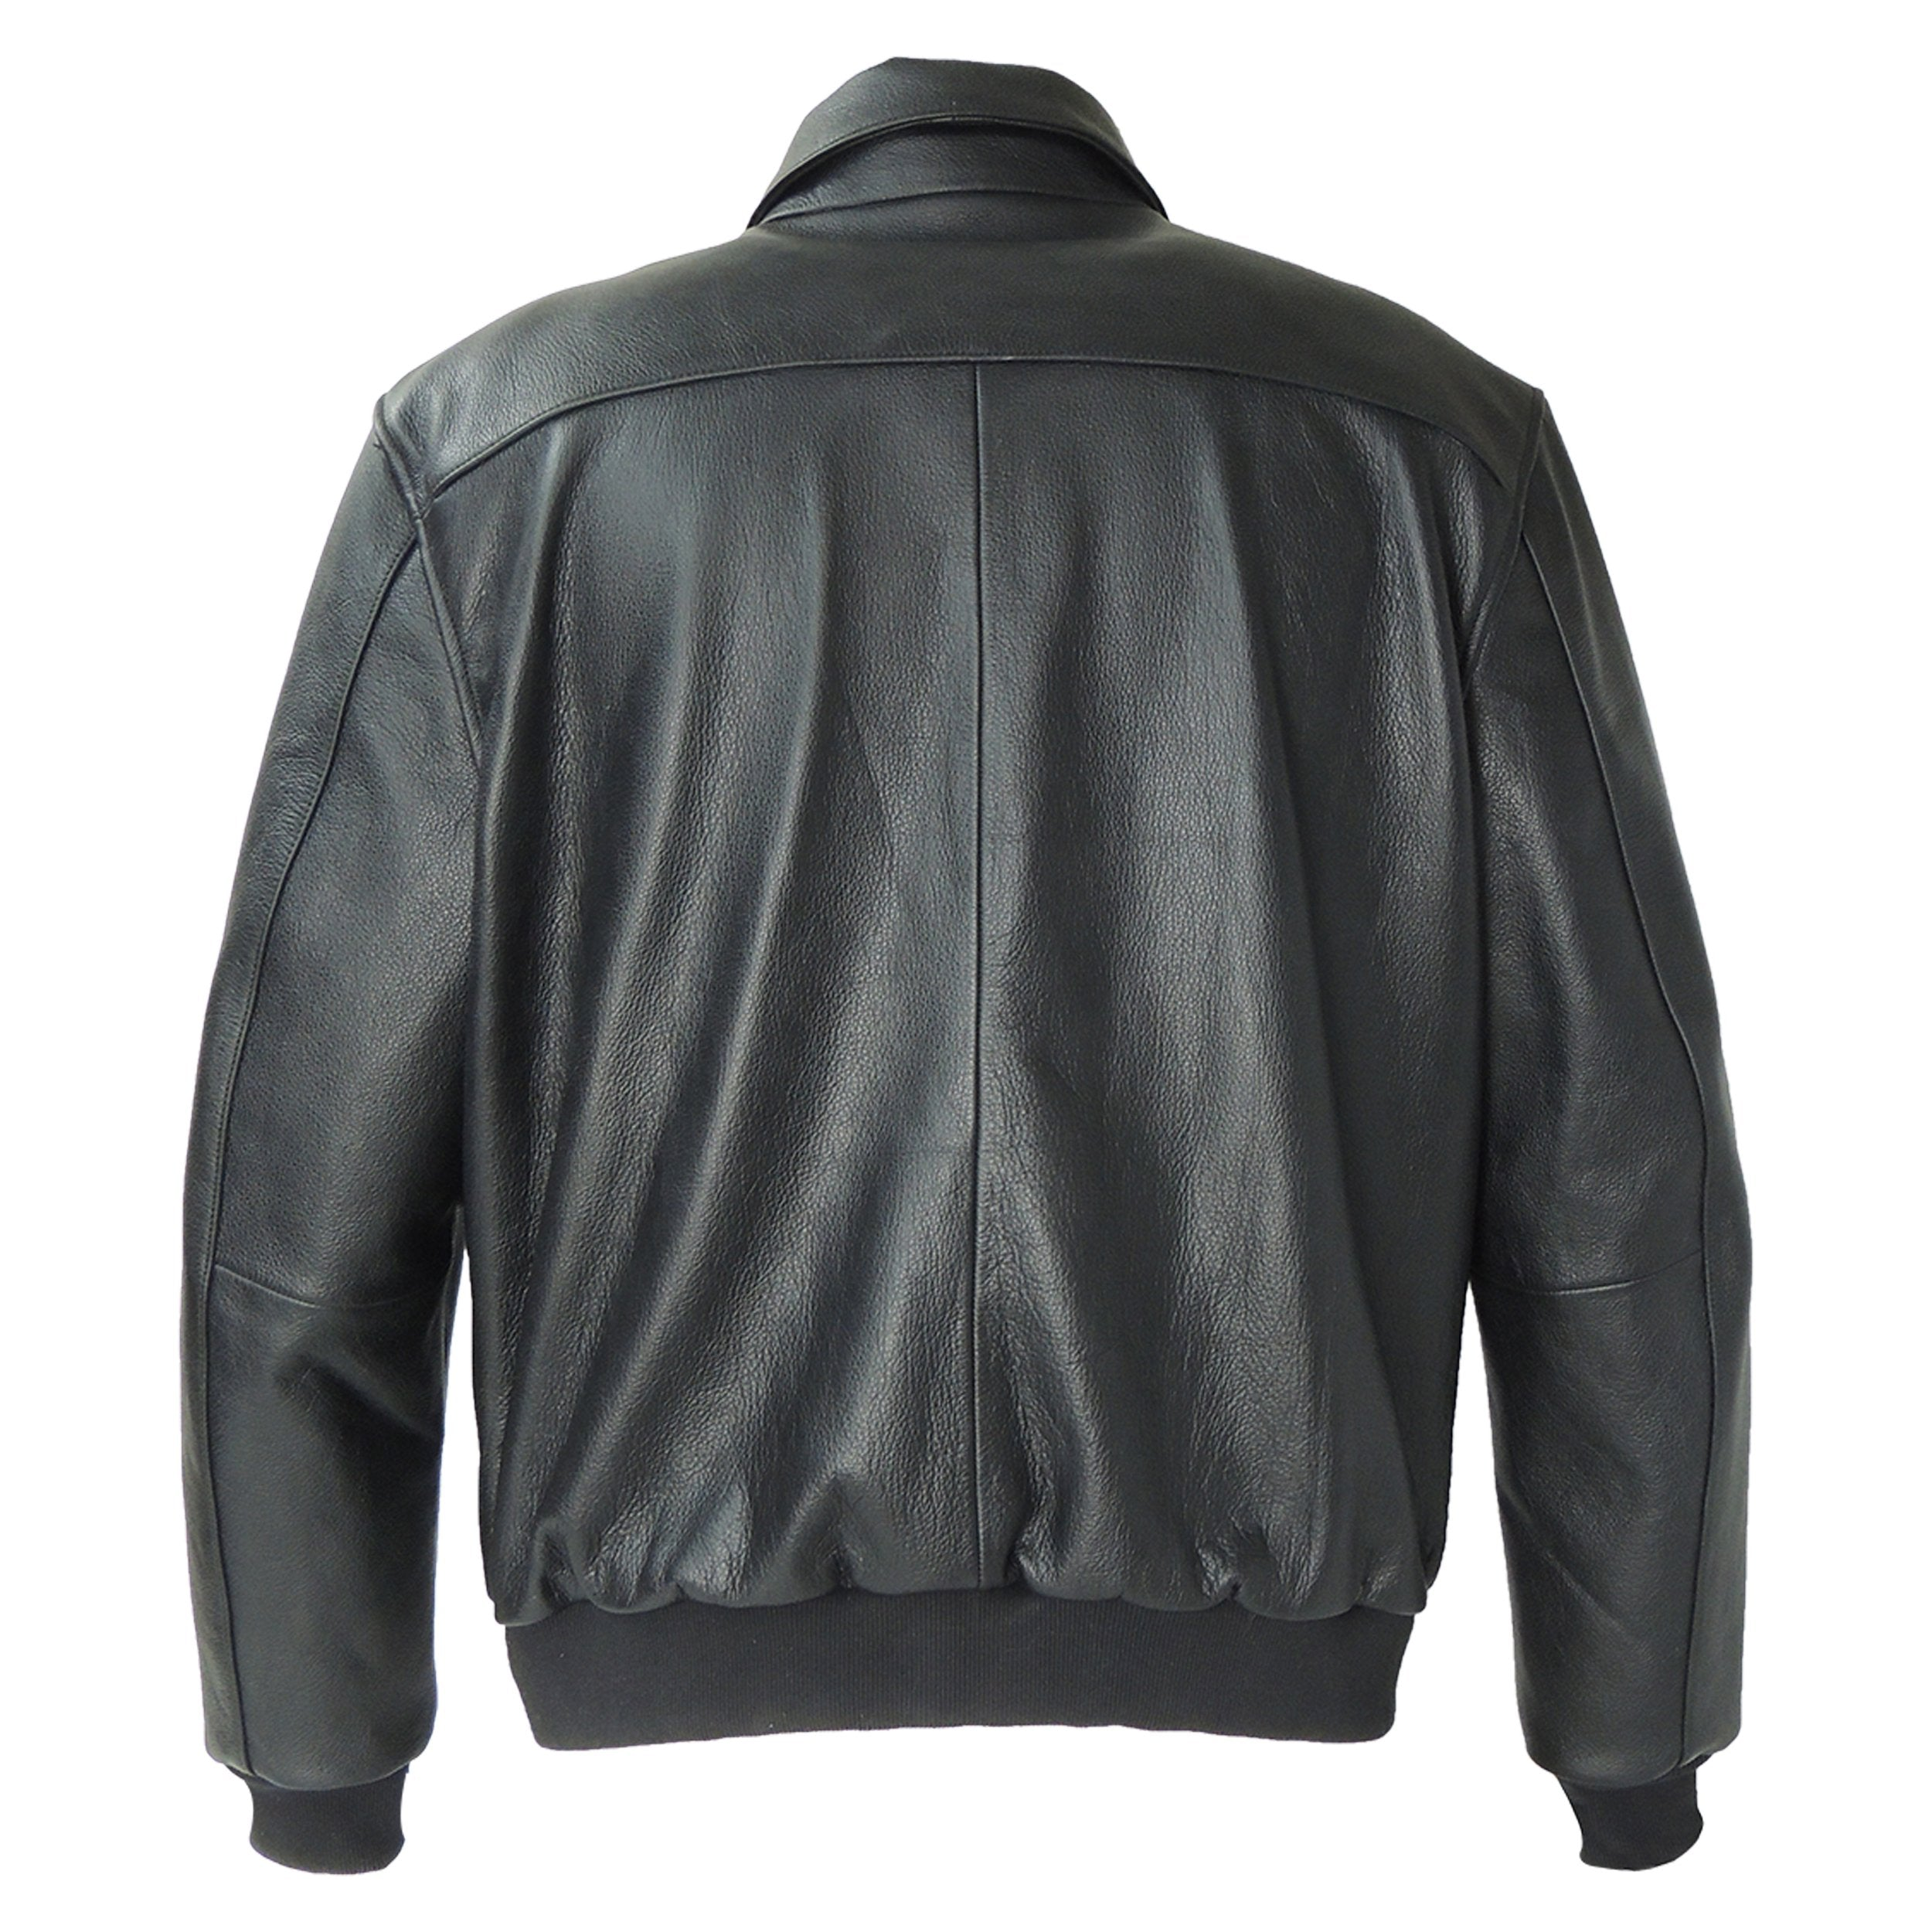 Mens A2 Flight Jacket Goatskin Leather - fadcloset